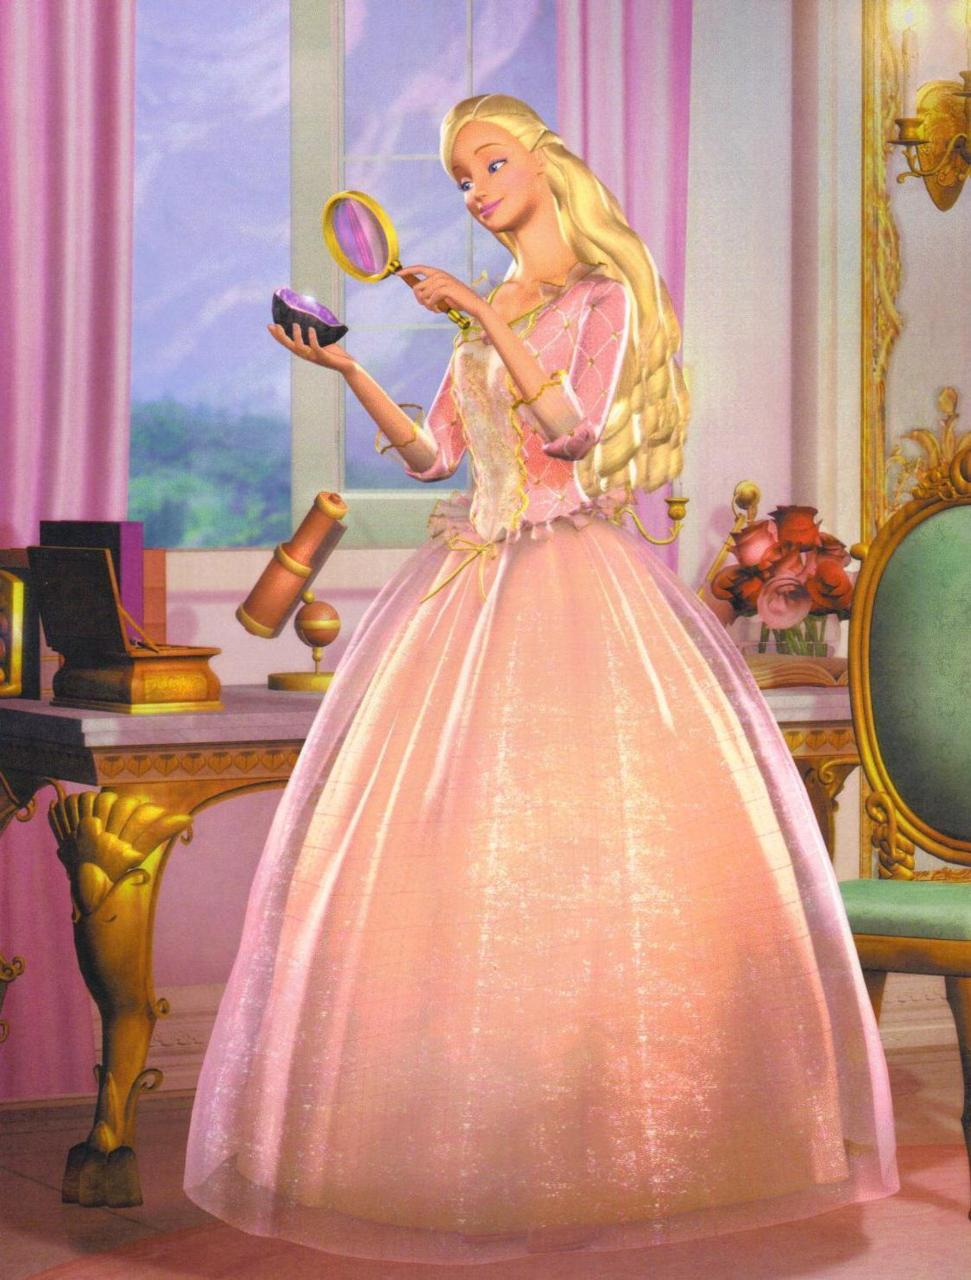 Barbie Movies Images Stills New Hd Wallpaper And Princess And The Pauper